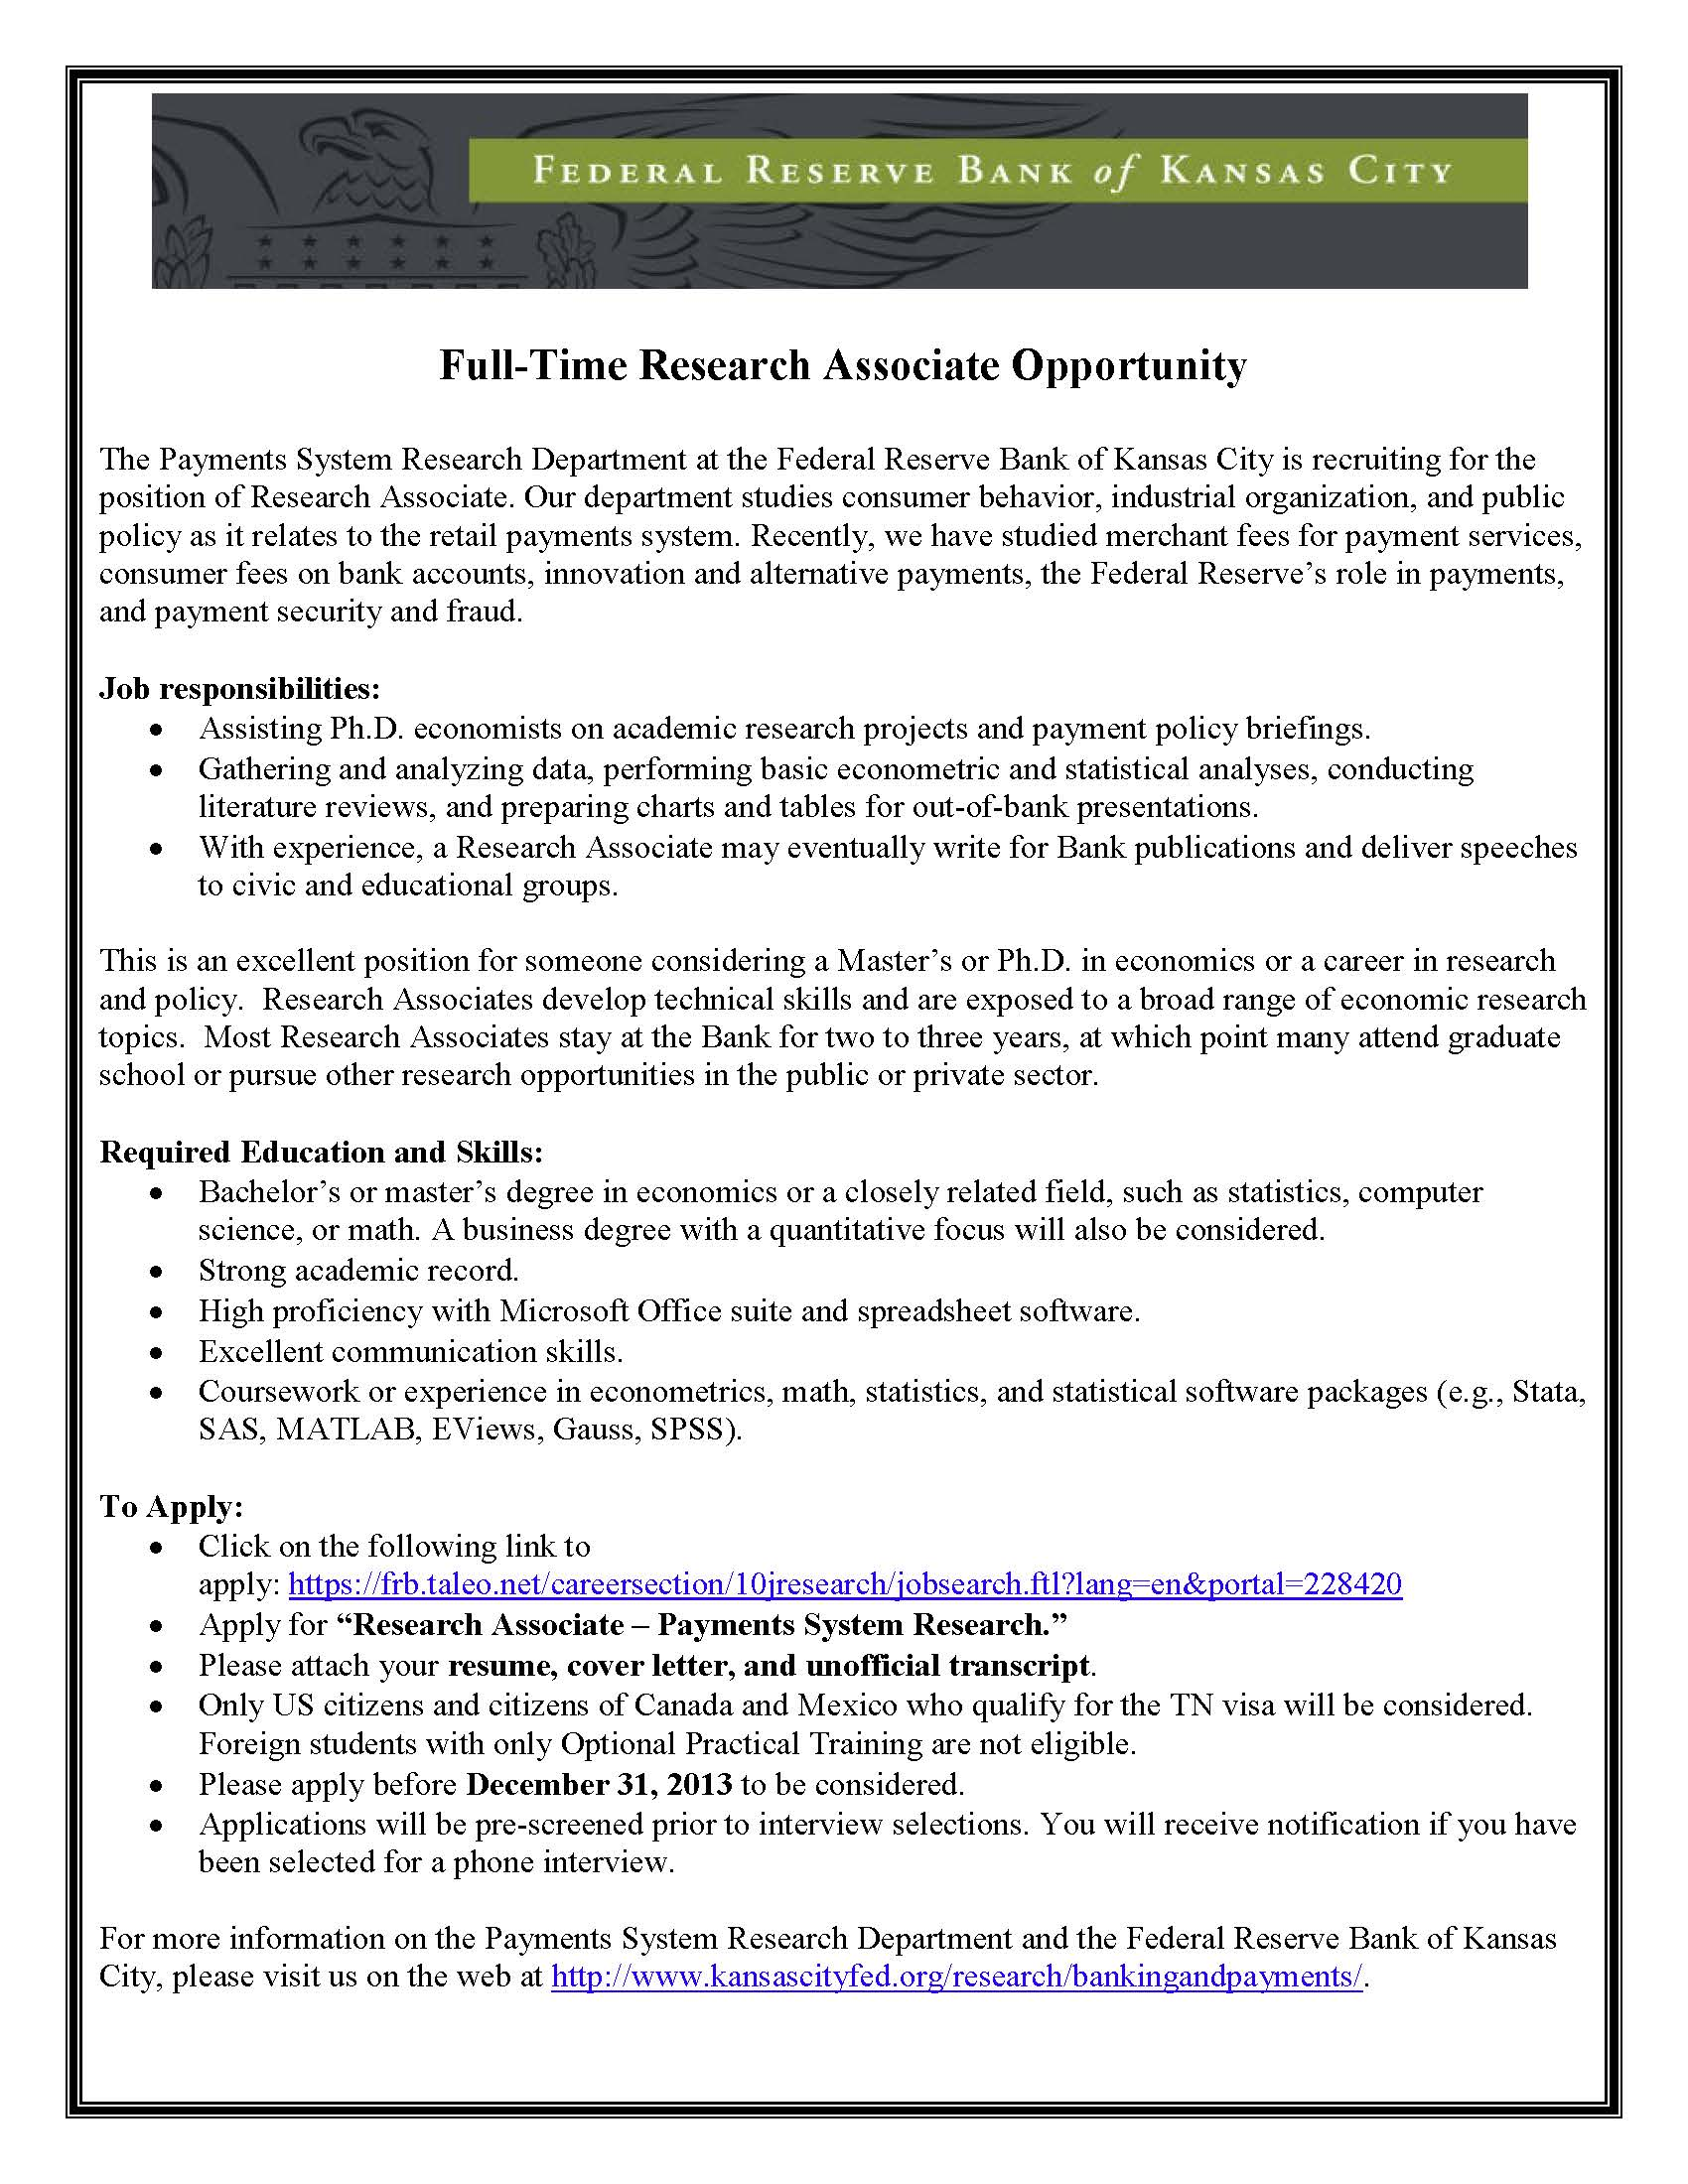 Cover Letter Federal Reserve Bank